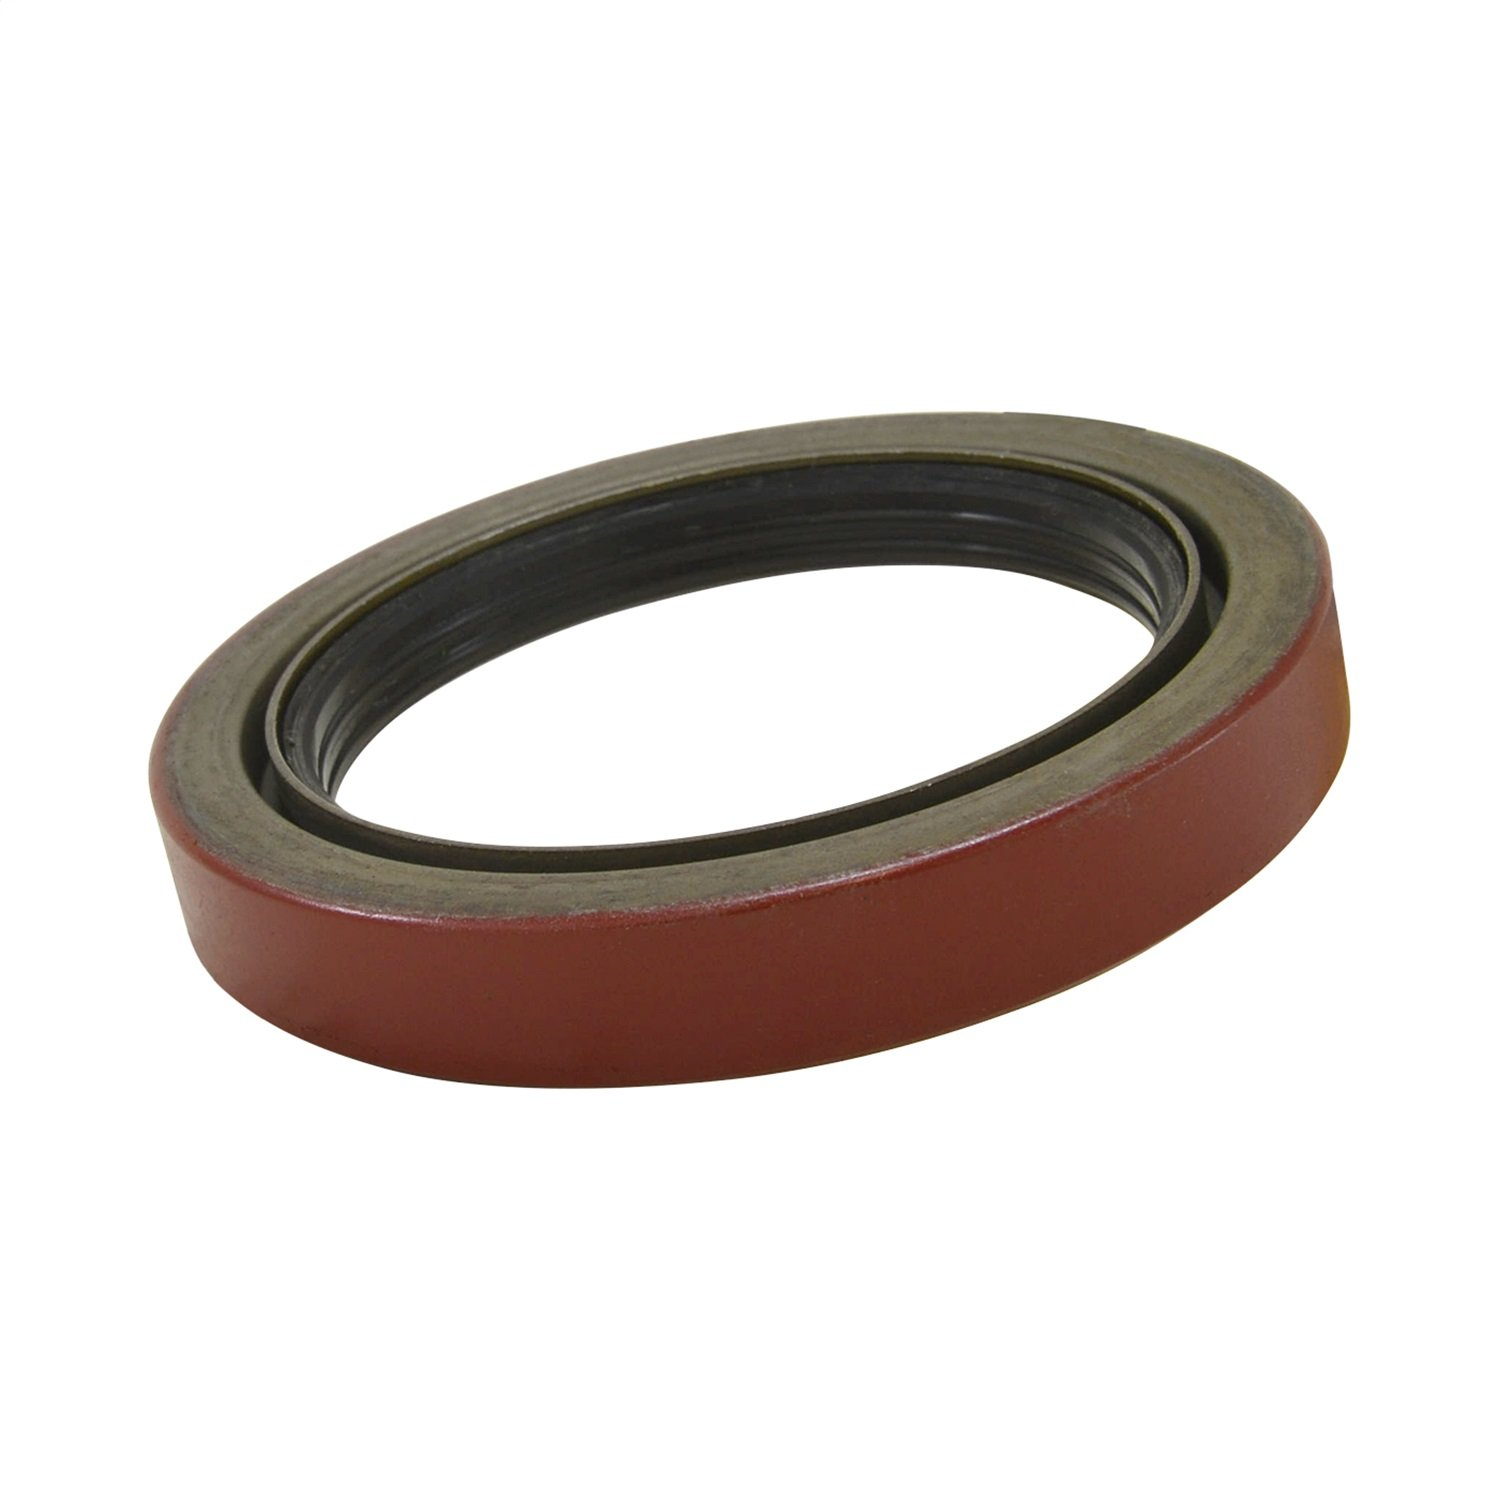 Yukon Gear & Axle (YMS370047A) Full-Floating Axle Seal for Ford 10.25 Differential by Yukon Gear